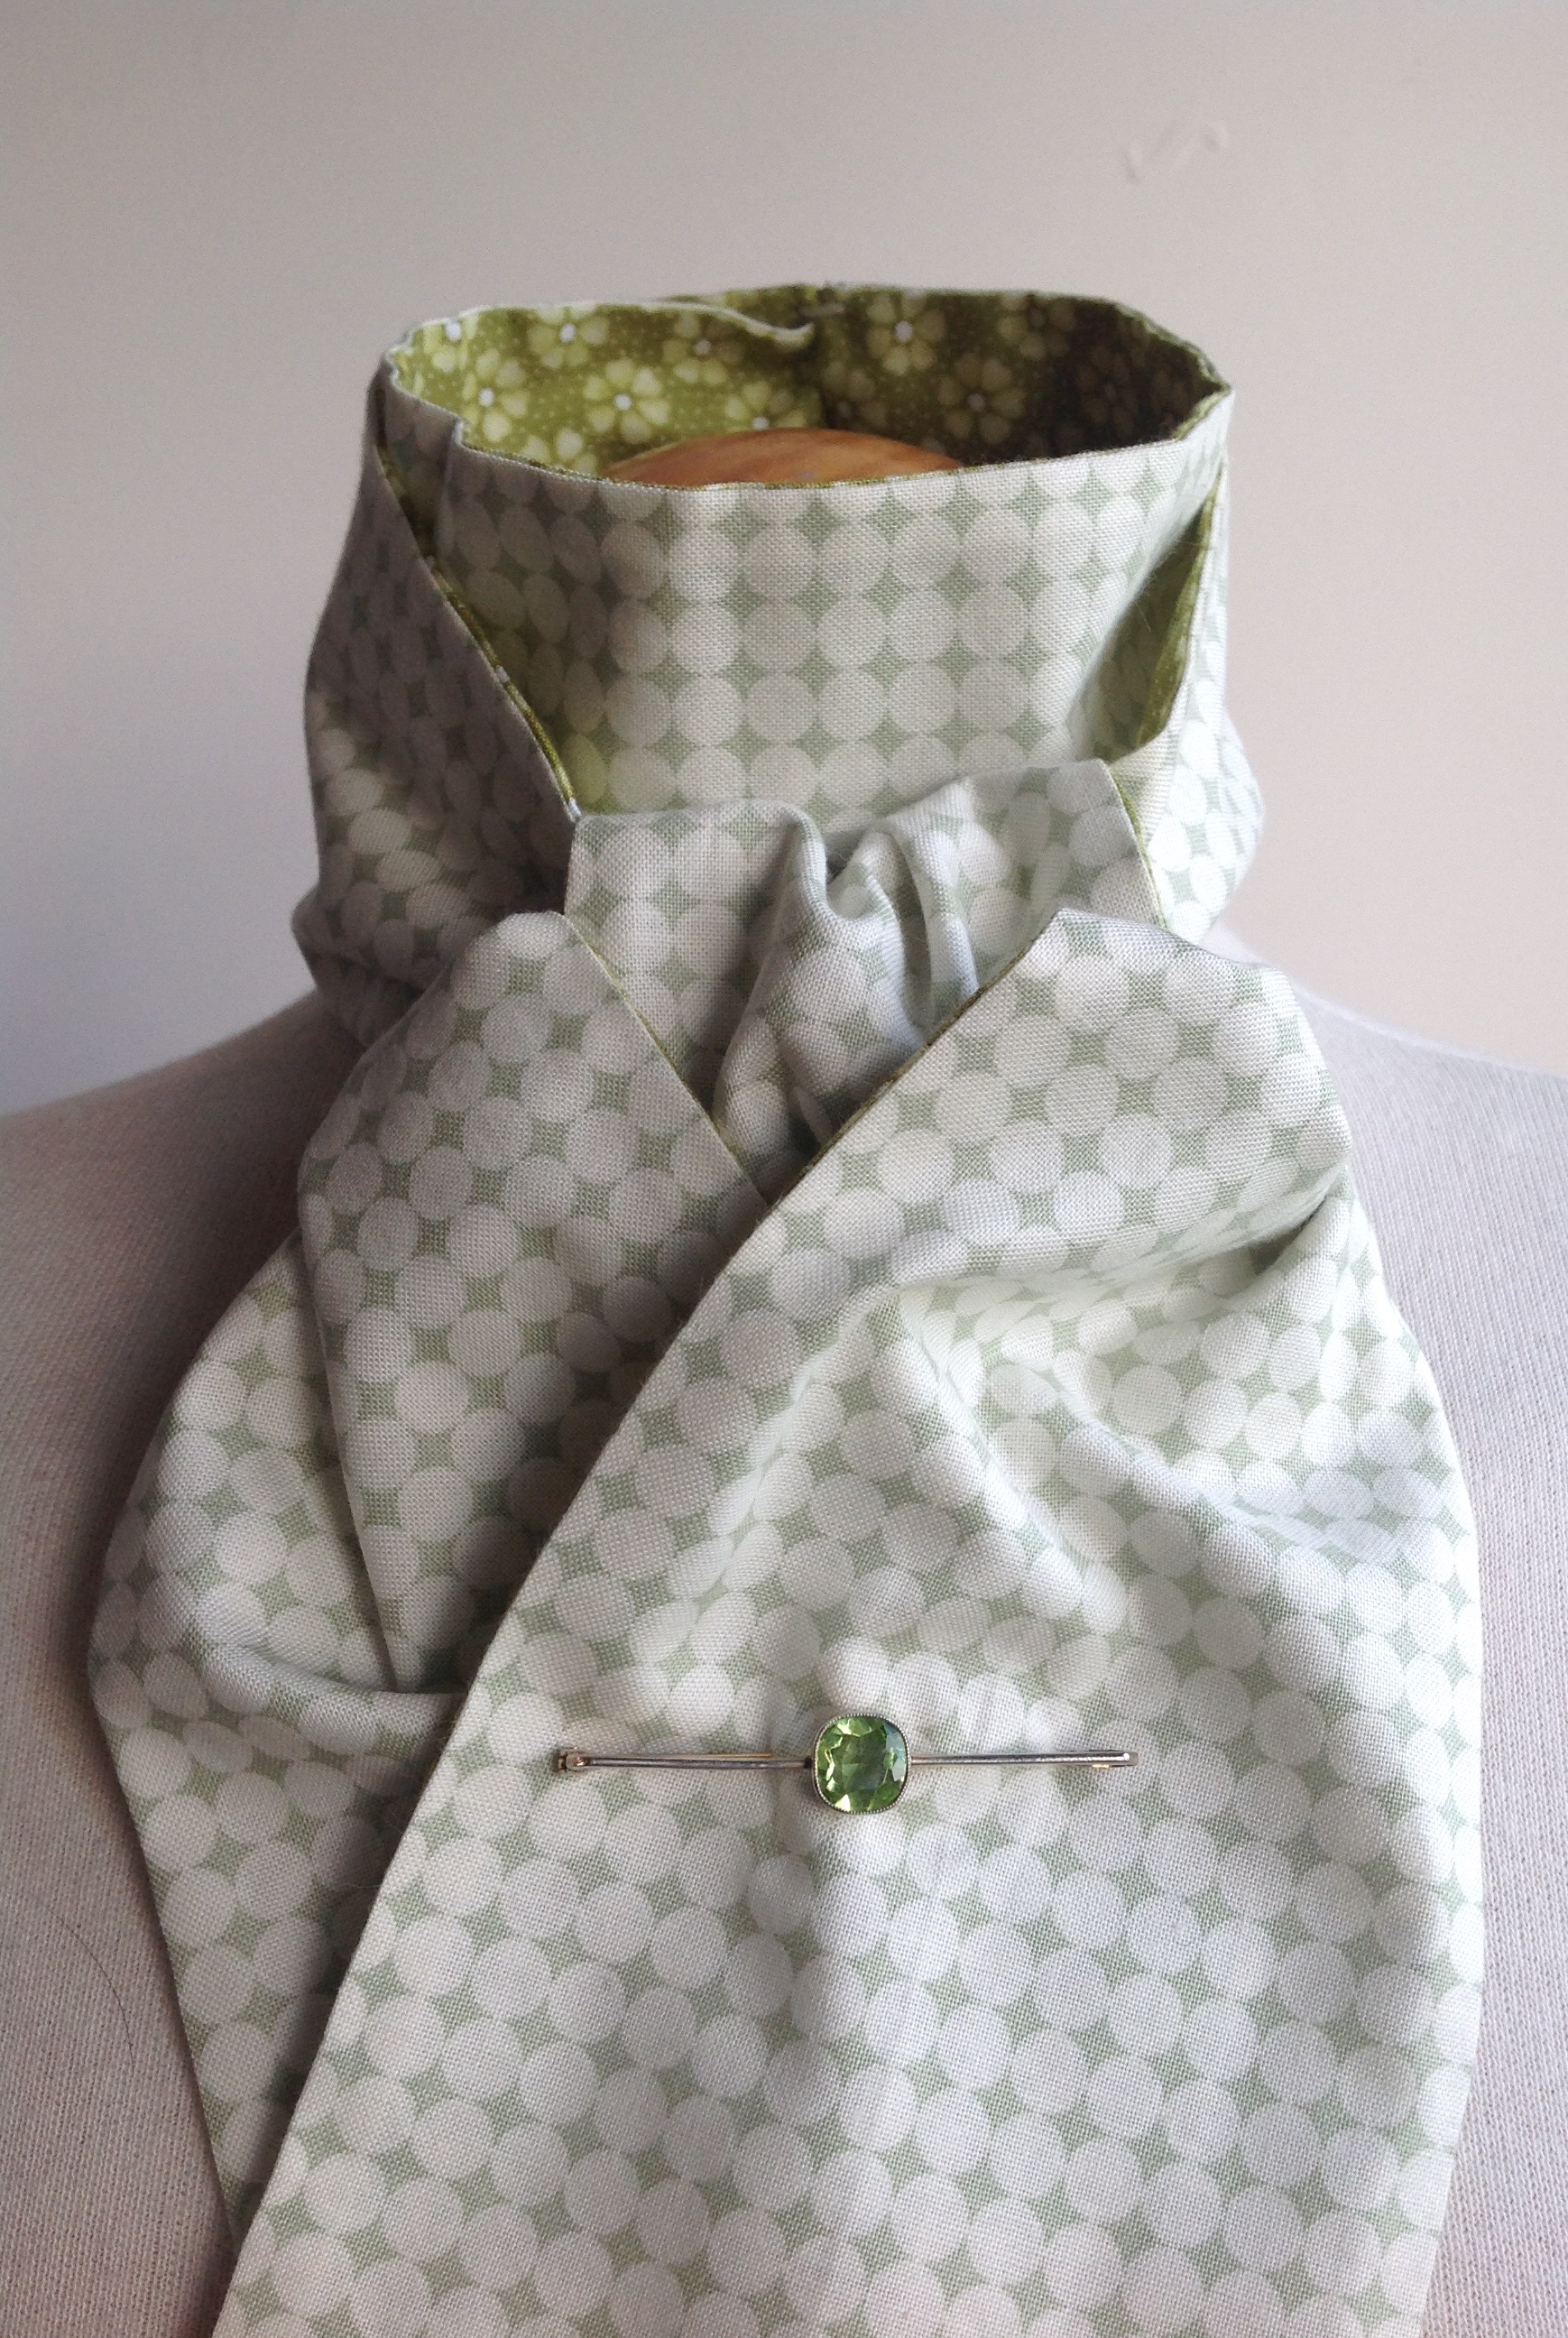 Shaped to tie 100% cotton reversible stock - green floral and polka dots